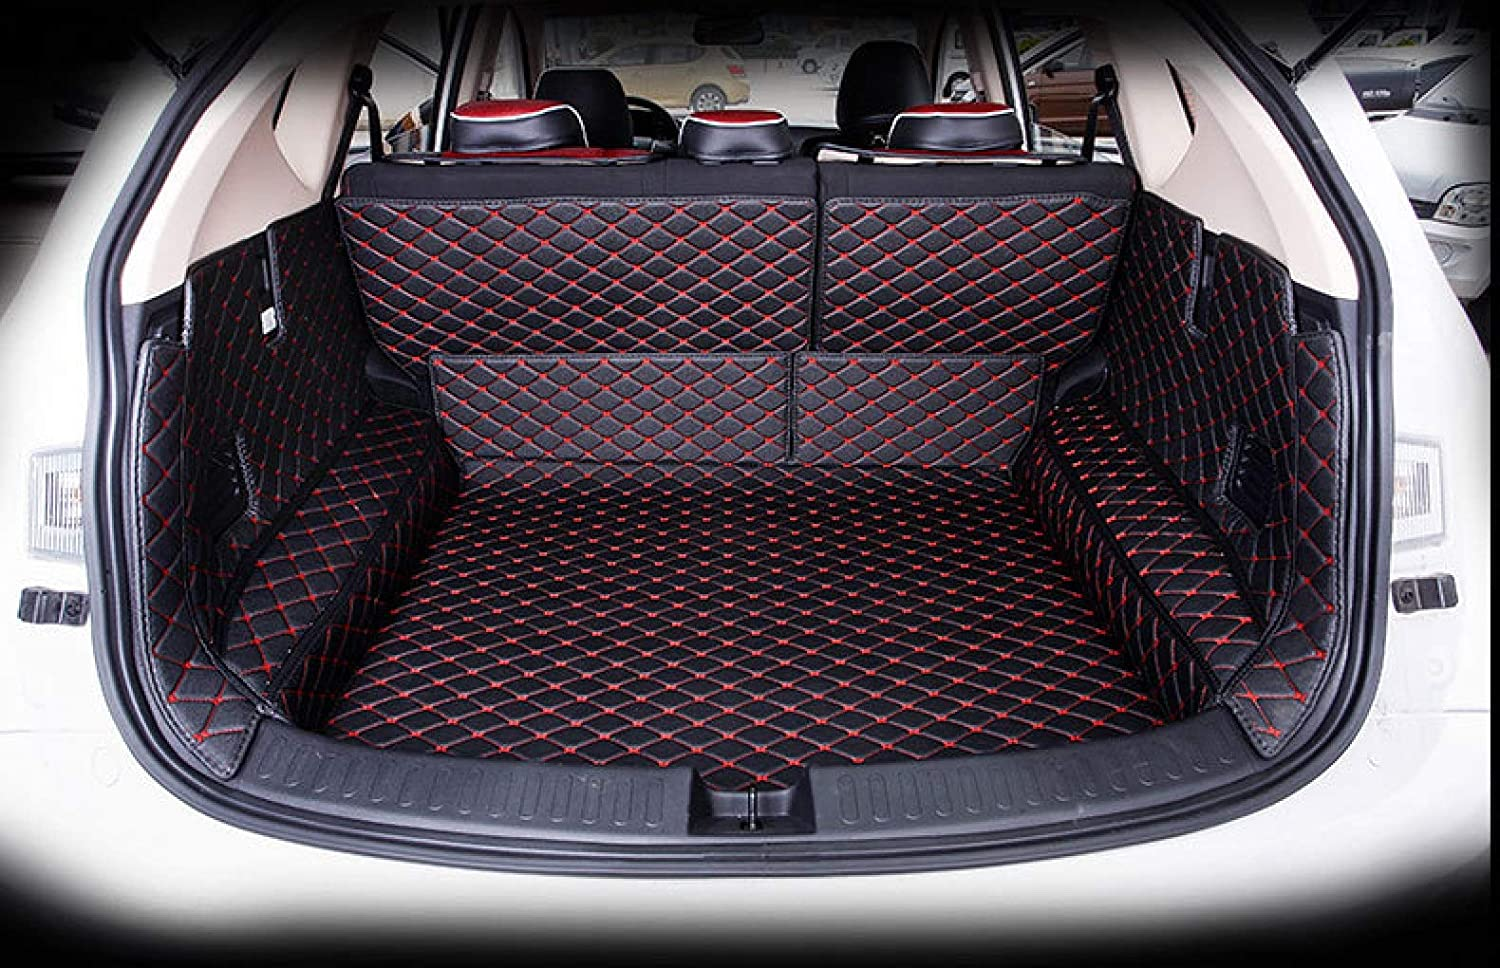 Bonus-Mats Custom Fit All-Weather Full Coverage Waterproof Car Cargo Liner Trunk Mat for Mercedes Benz GLS Class GLS320 GLS350 GLS350d GLS400 GLS450 GLS500 GLS550 GLS63 2017-2019 Beige